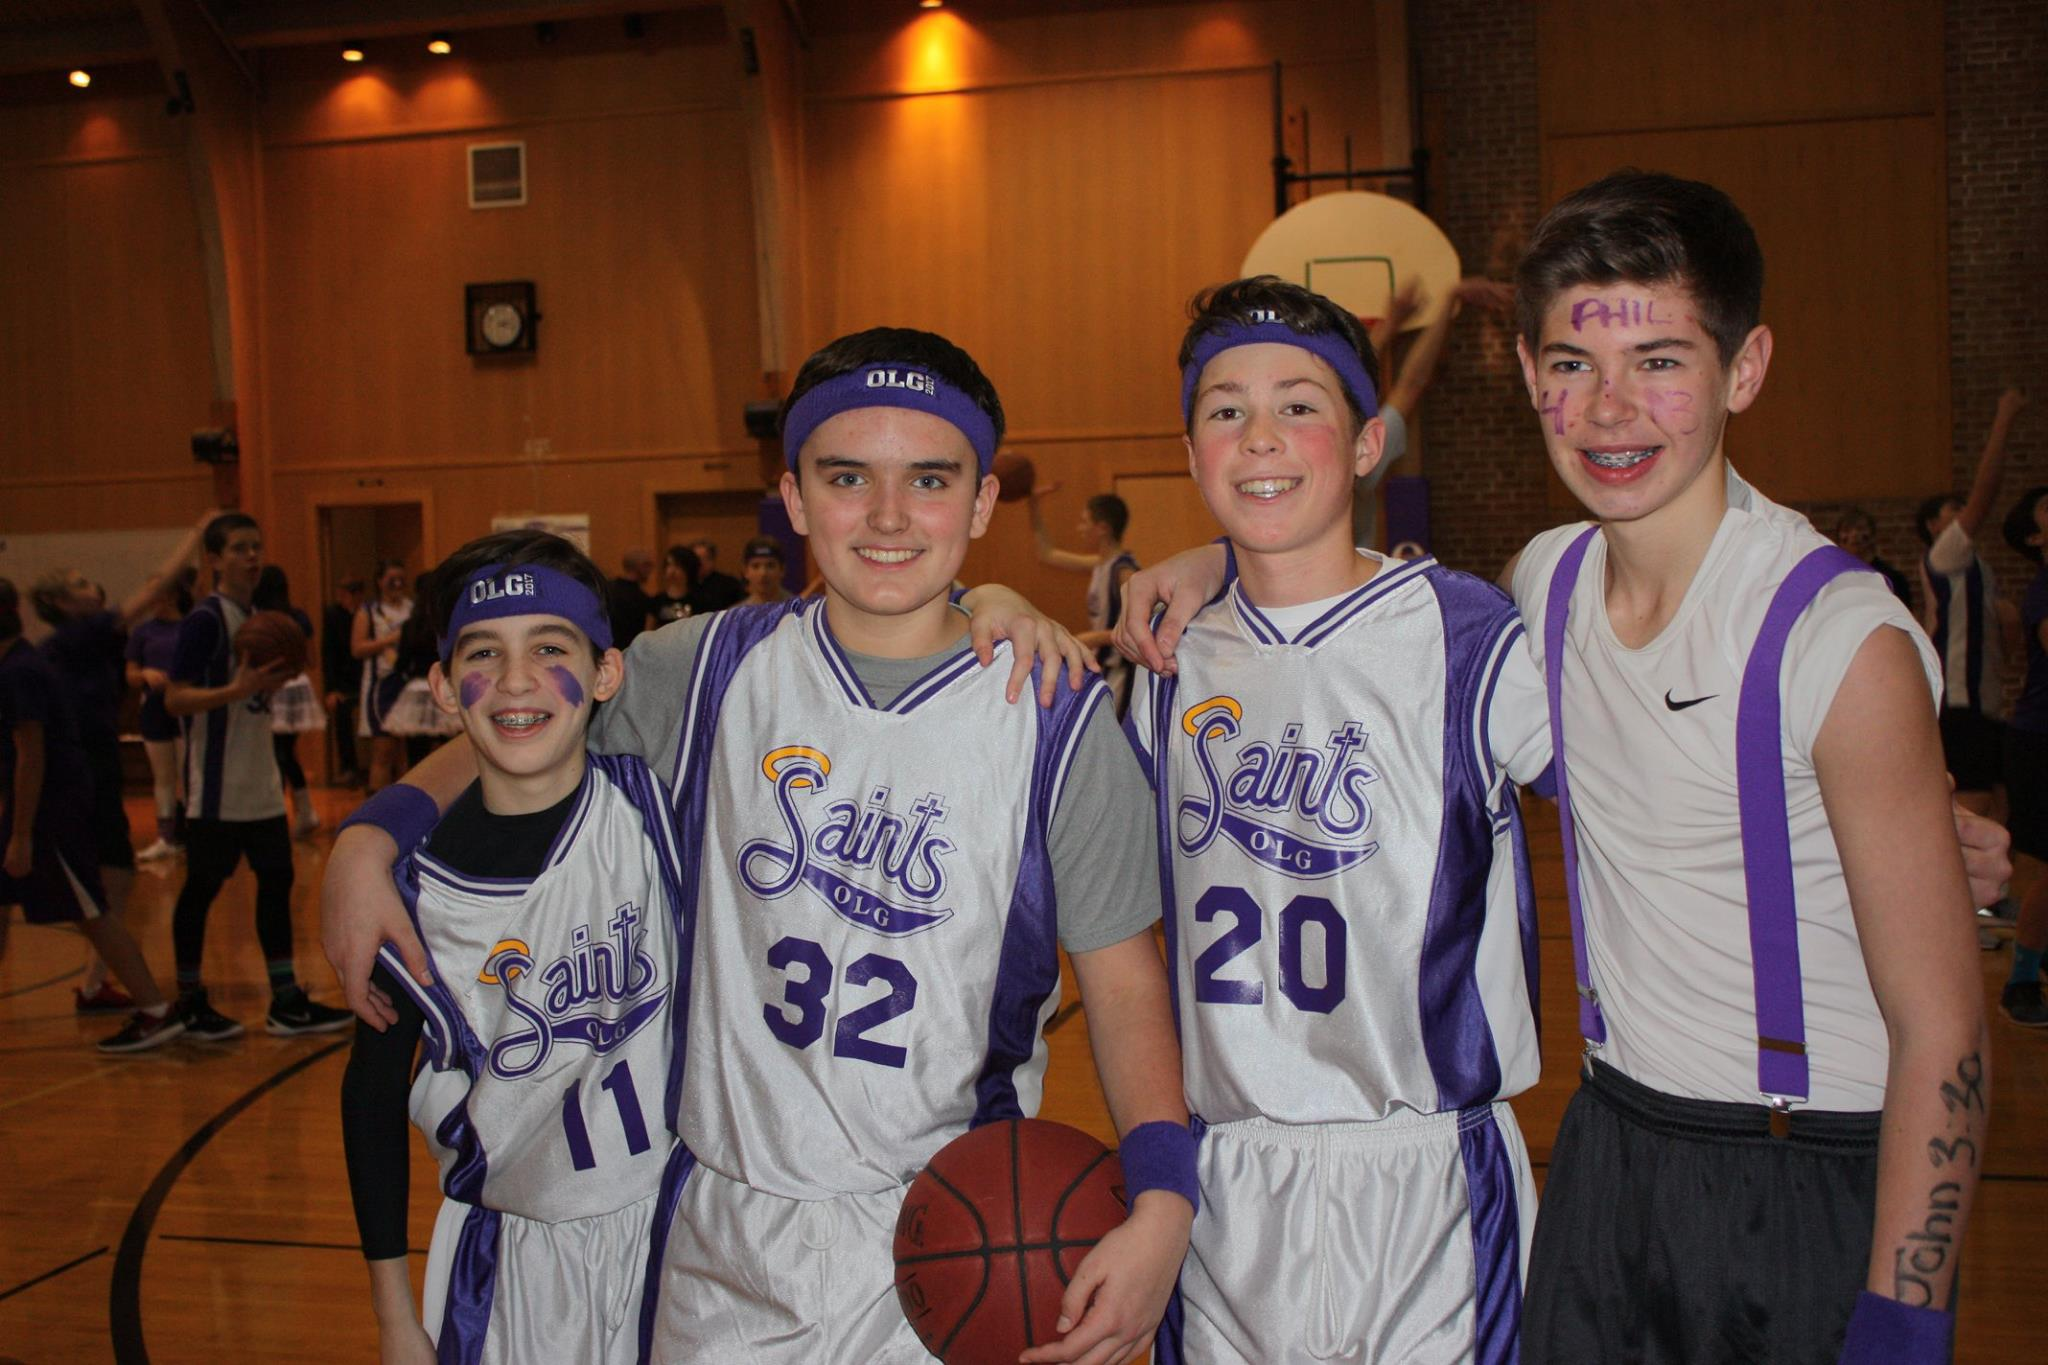 Our Lady of Grace School Basketball